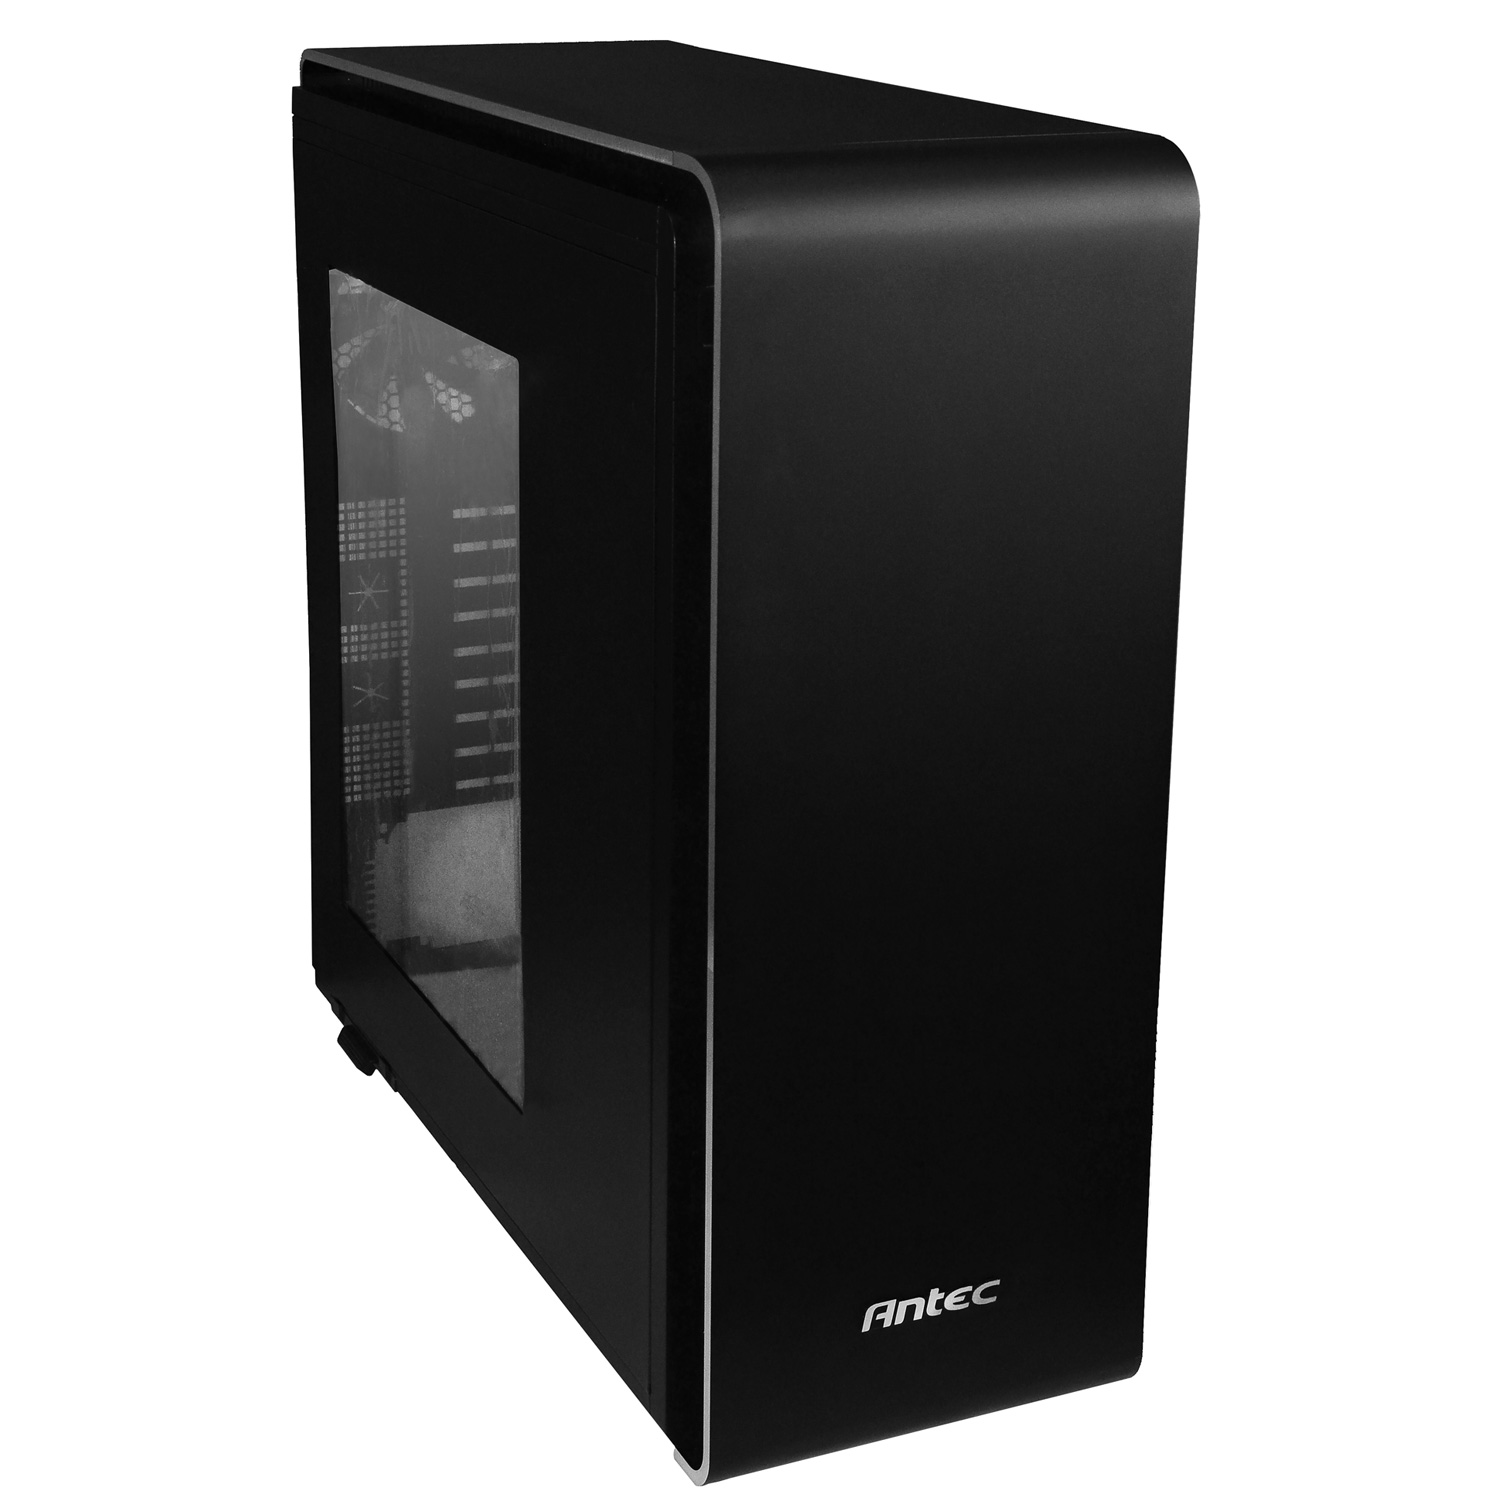 antec p380 bo tier pc antec sur ldlc. Black Bedroom Furniture Sets. Home Design Ideas